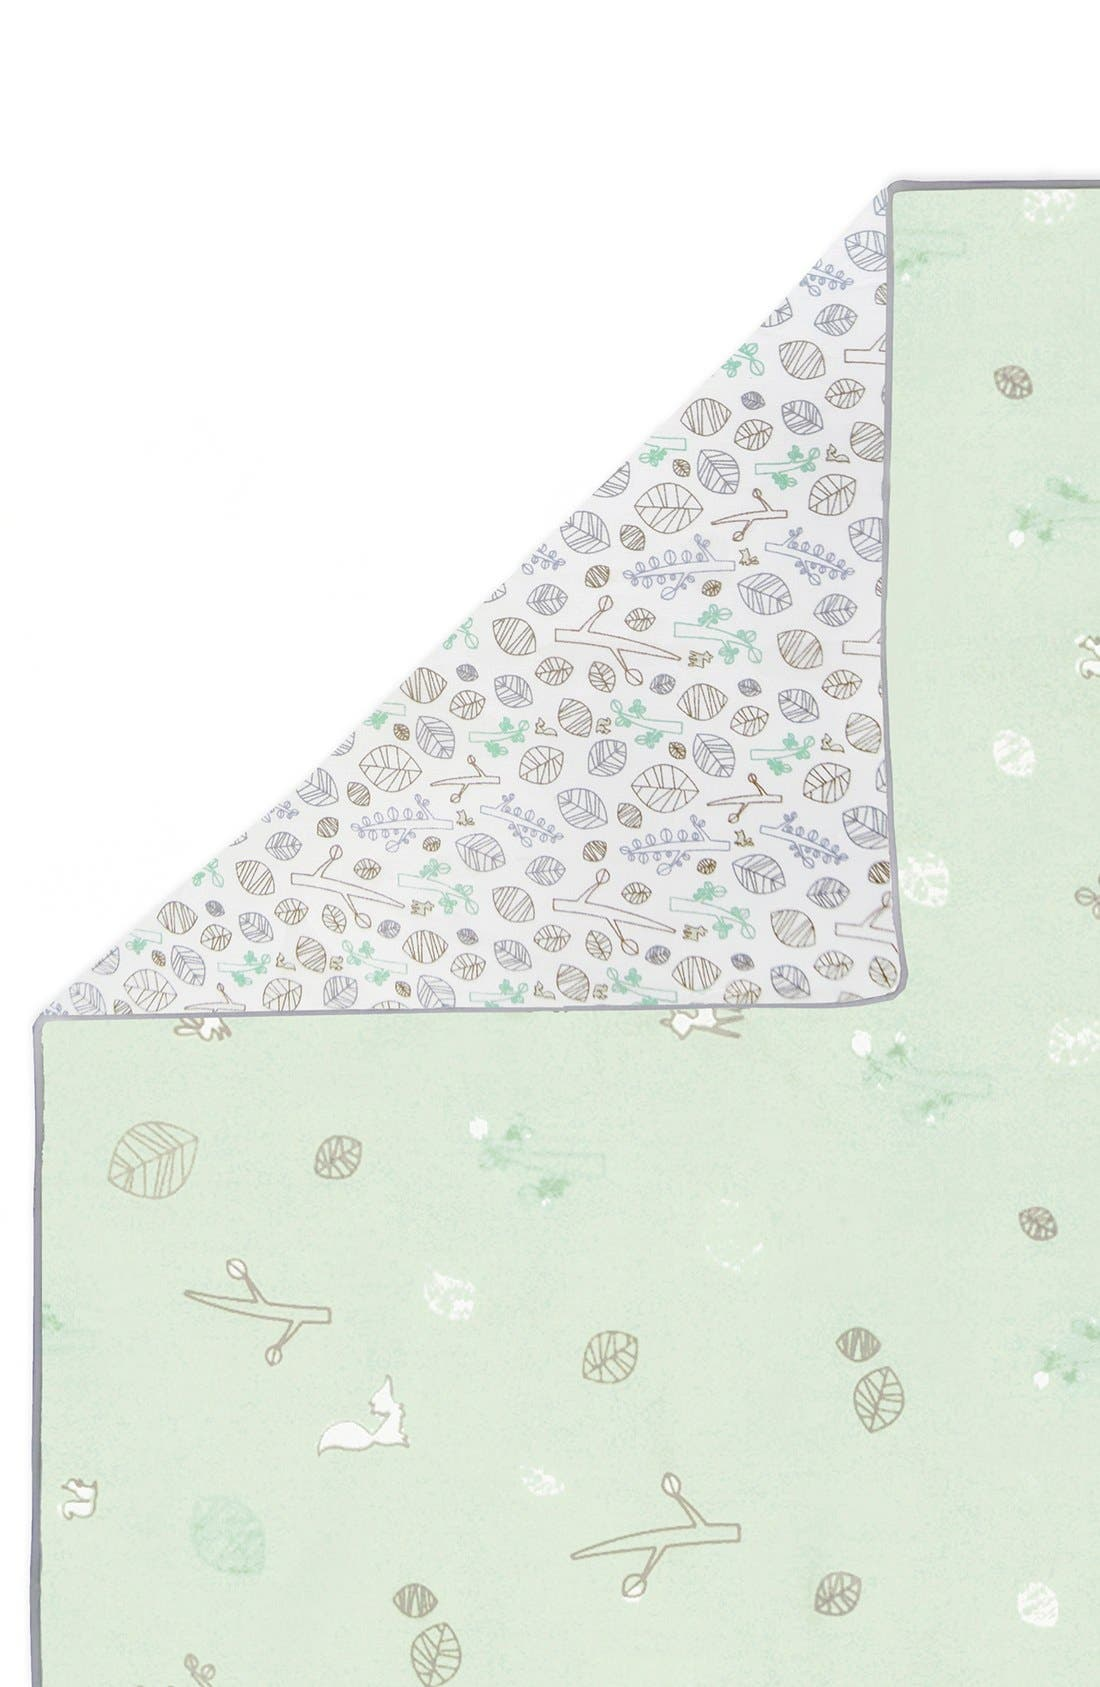 'Woods' Crib Sheet, Crib Skirt, Contour Changing Pad, Play Blanket & Wall Decals,                             Alternate thumbnail 4, color,                             300